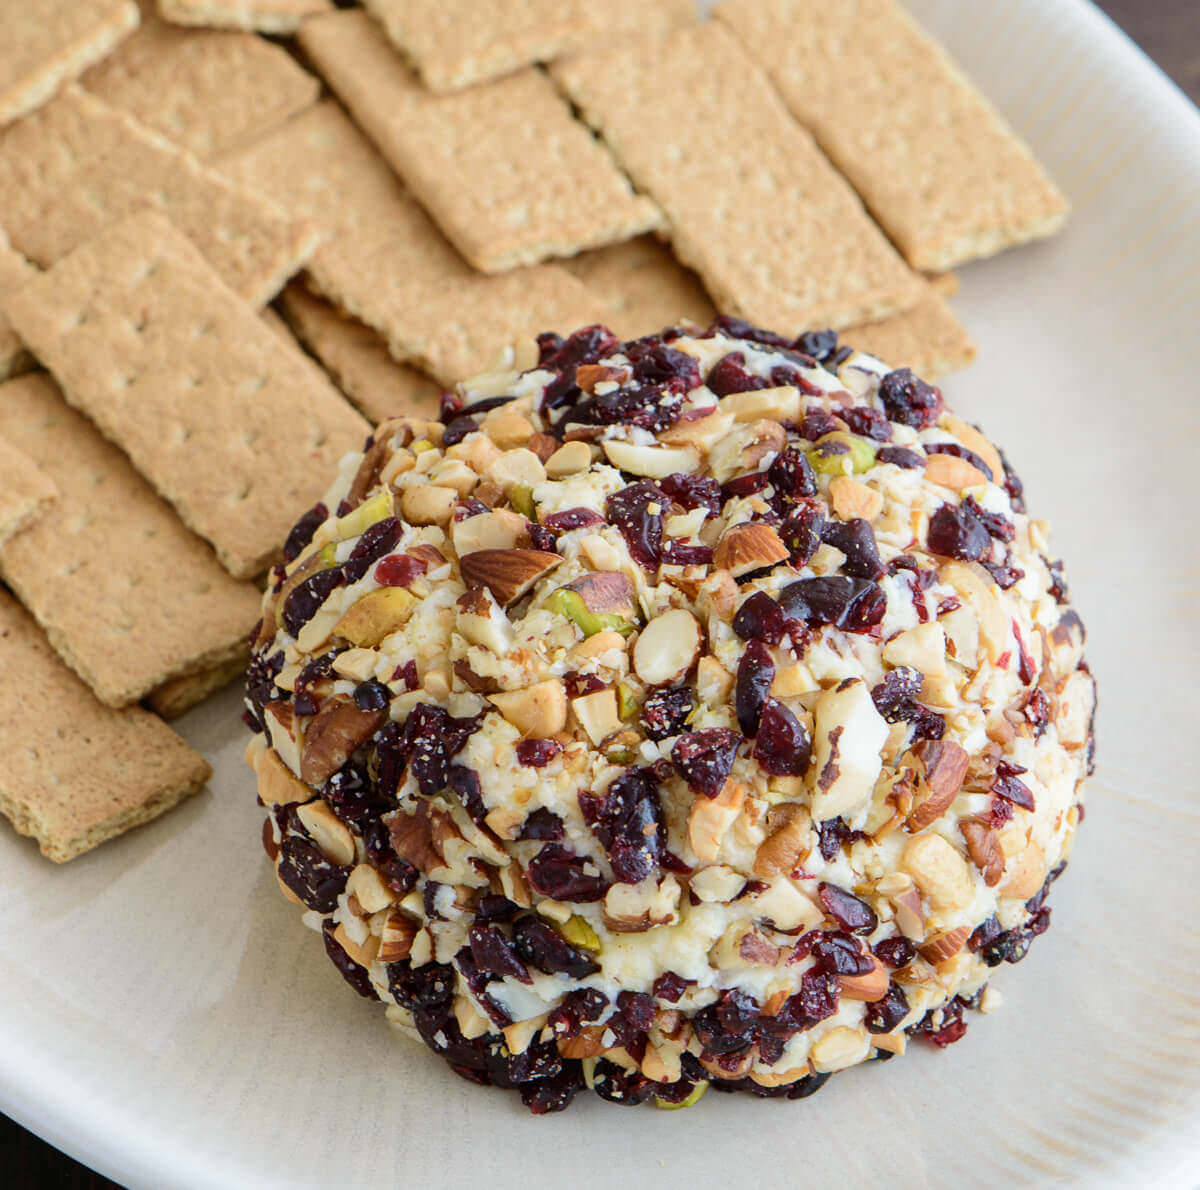 Dessert Cheese Ball with Cranberries and Mixed Nuts